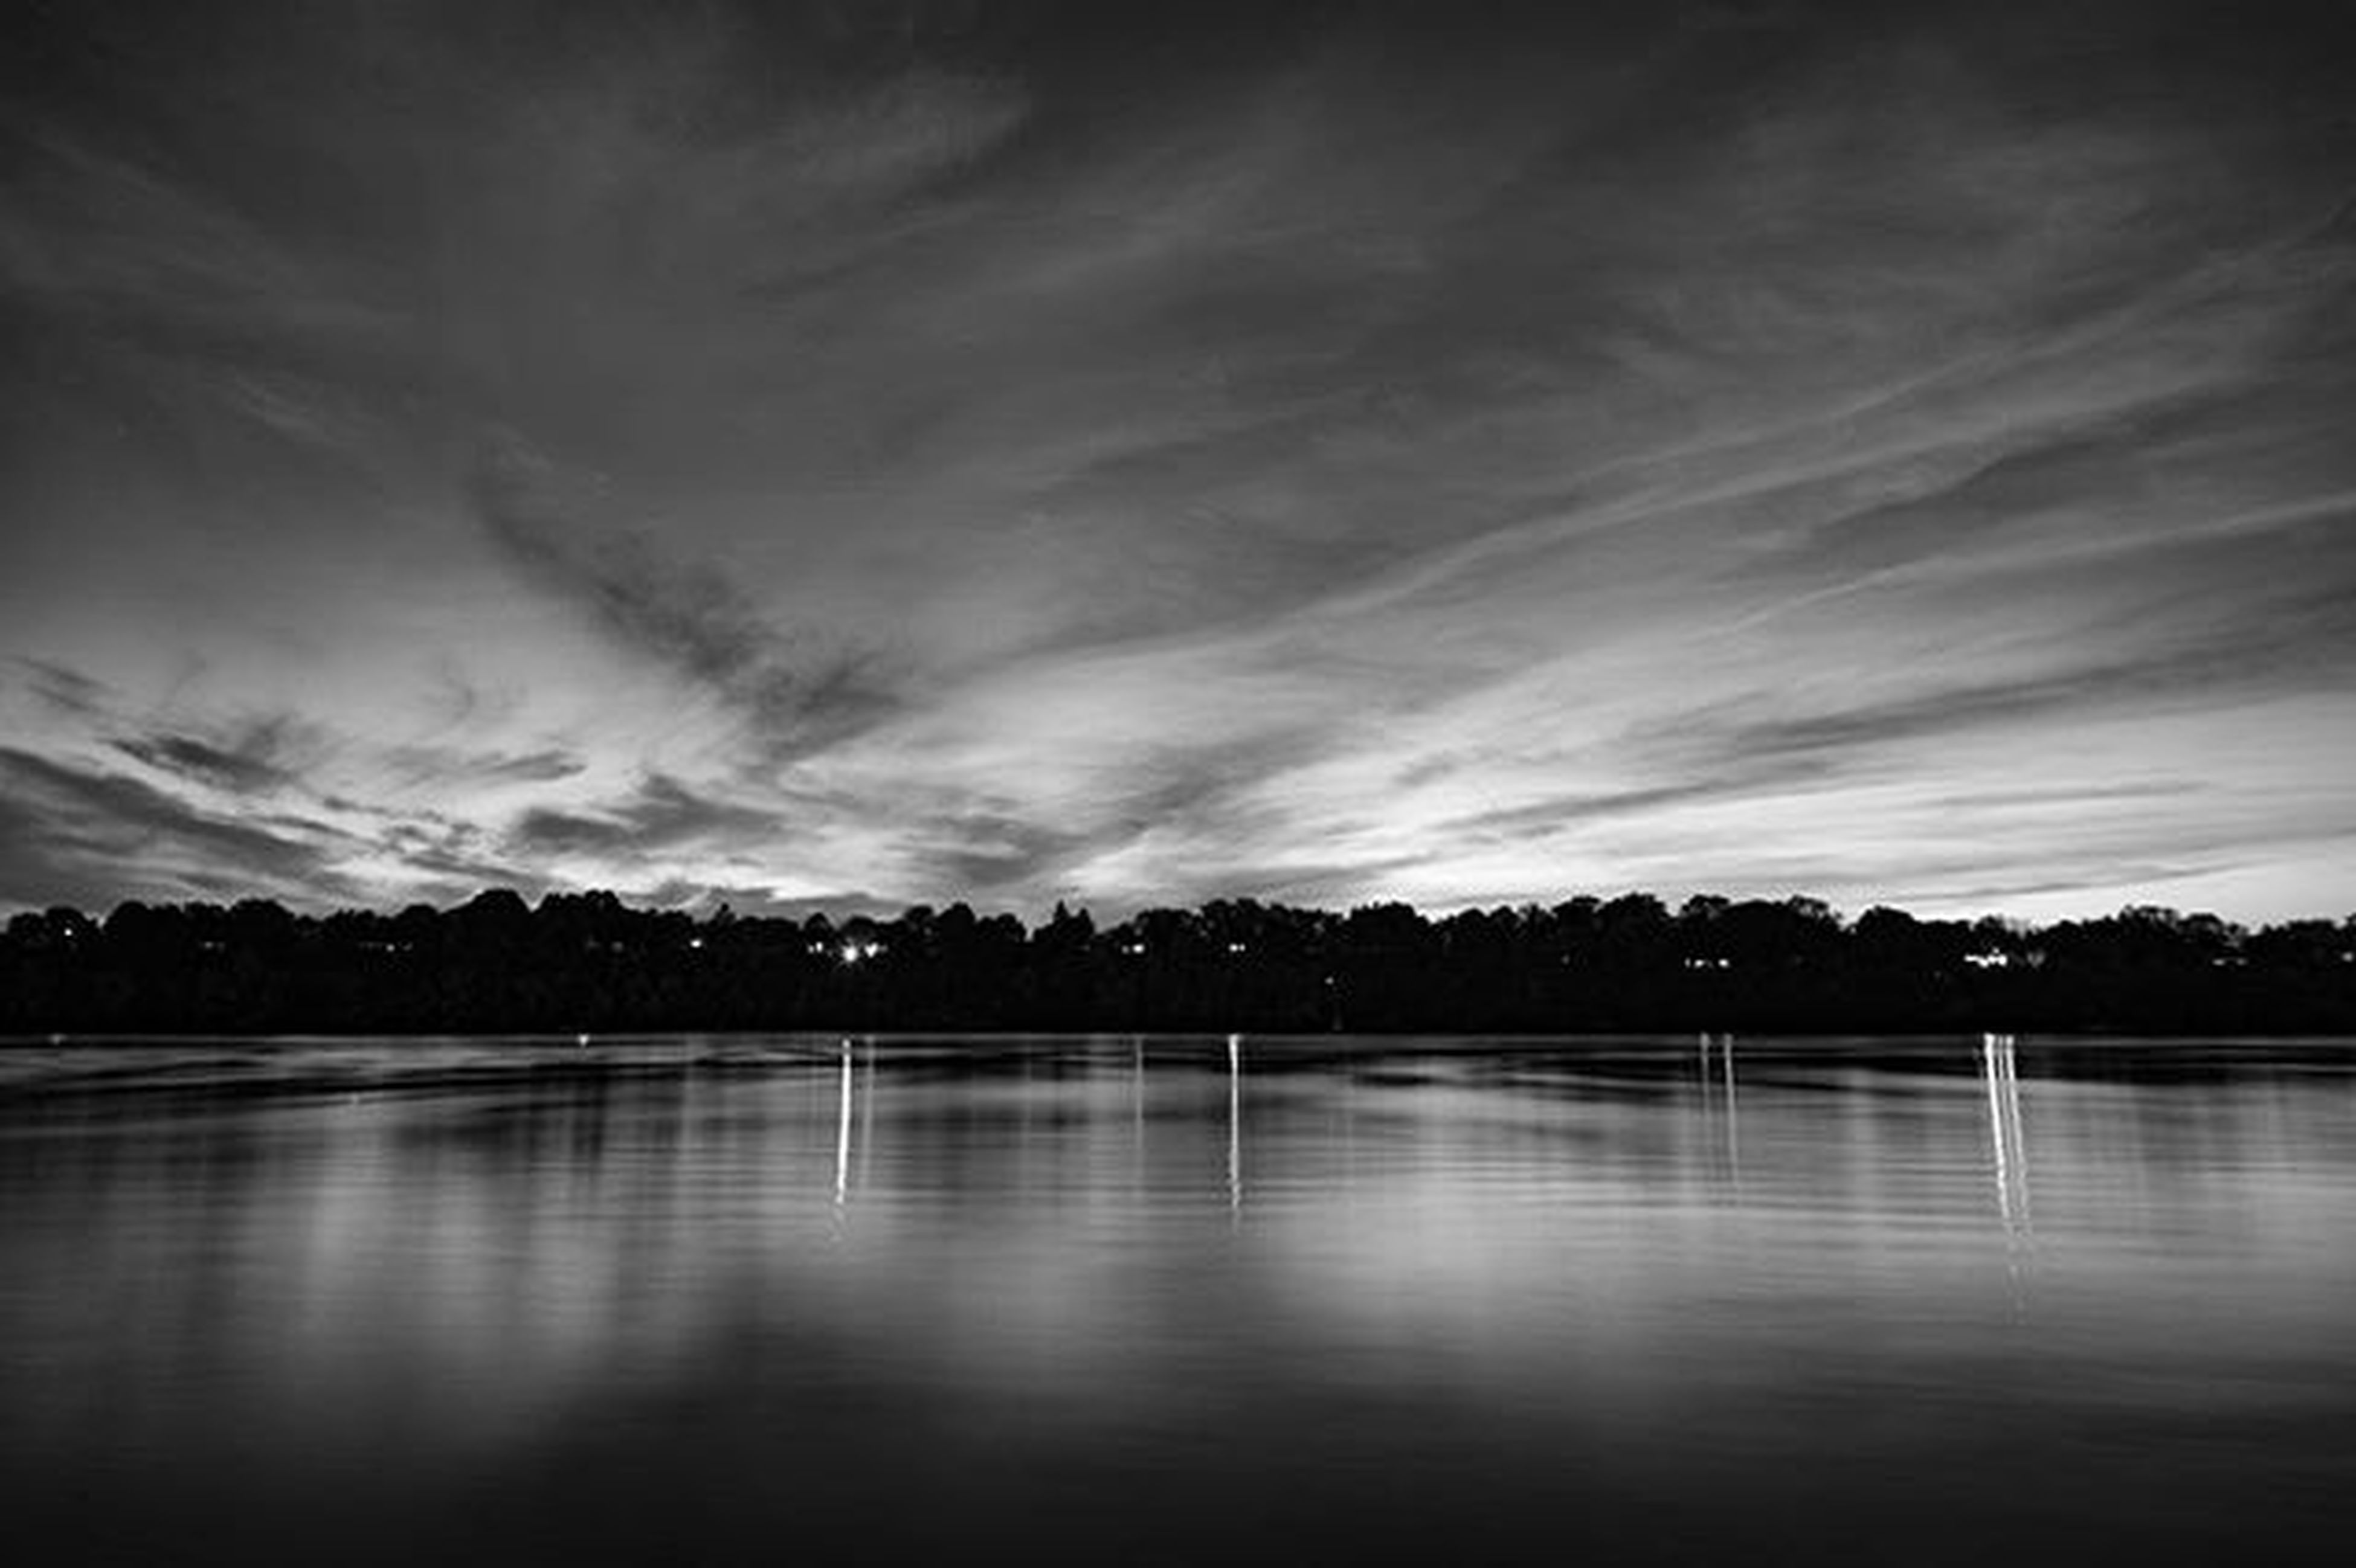 water, tranquil scene, tranquility, sky, waterfront, scenics, reflection, beauty in nature, lake, tree, cloud - sky, nature, silhouette, idyllic, cloudy, cloud, sunset, calm, river, dusk